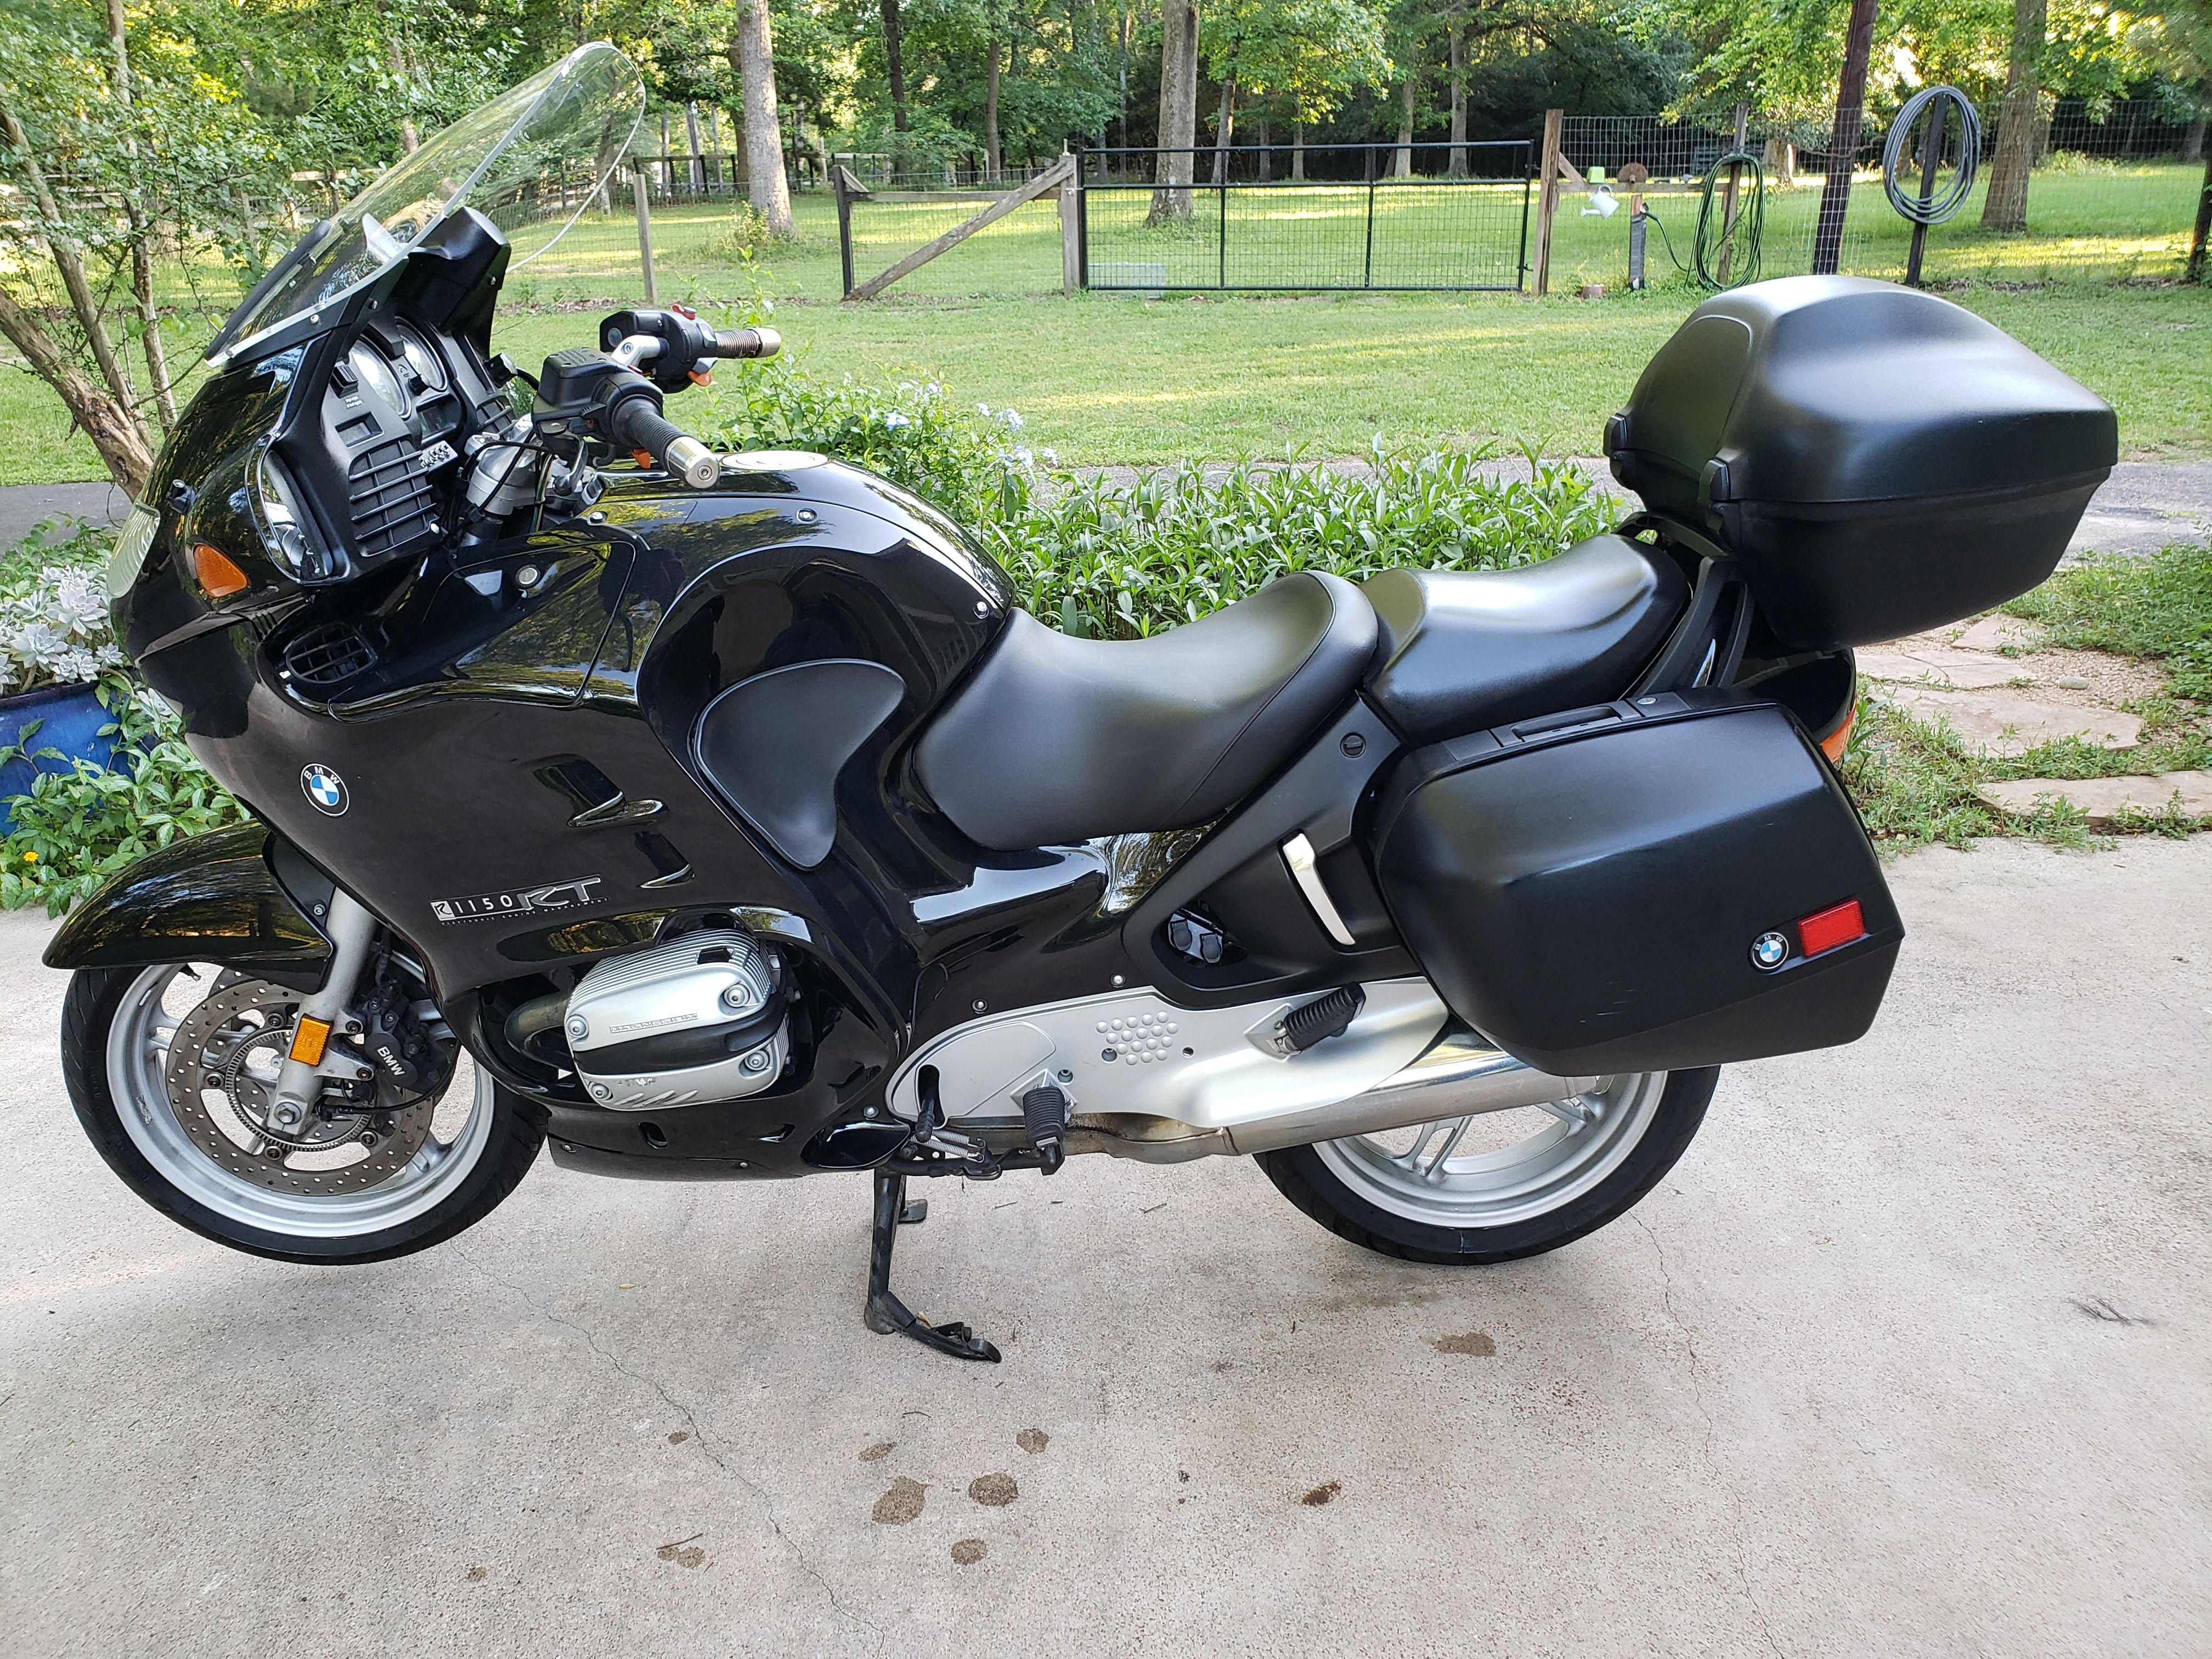 2004 BMW R1150rt Review images – Good Pixeles